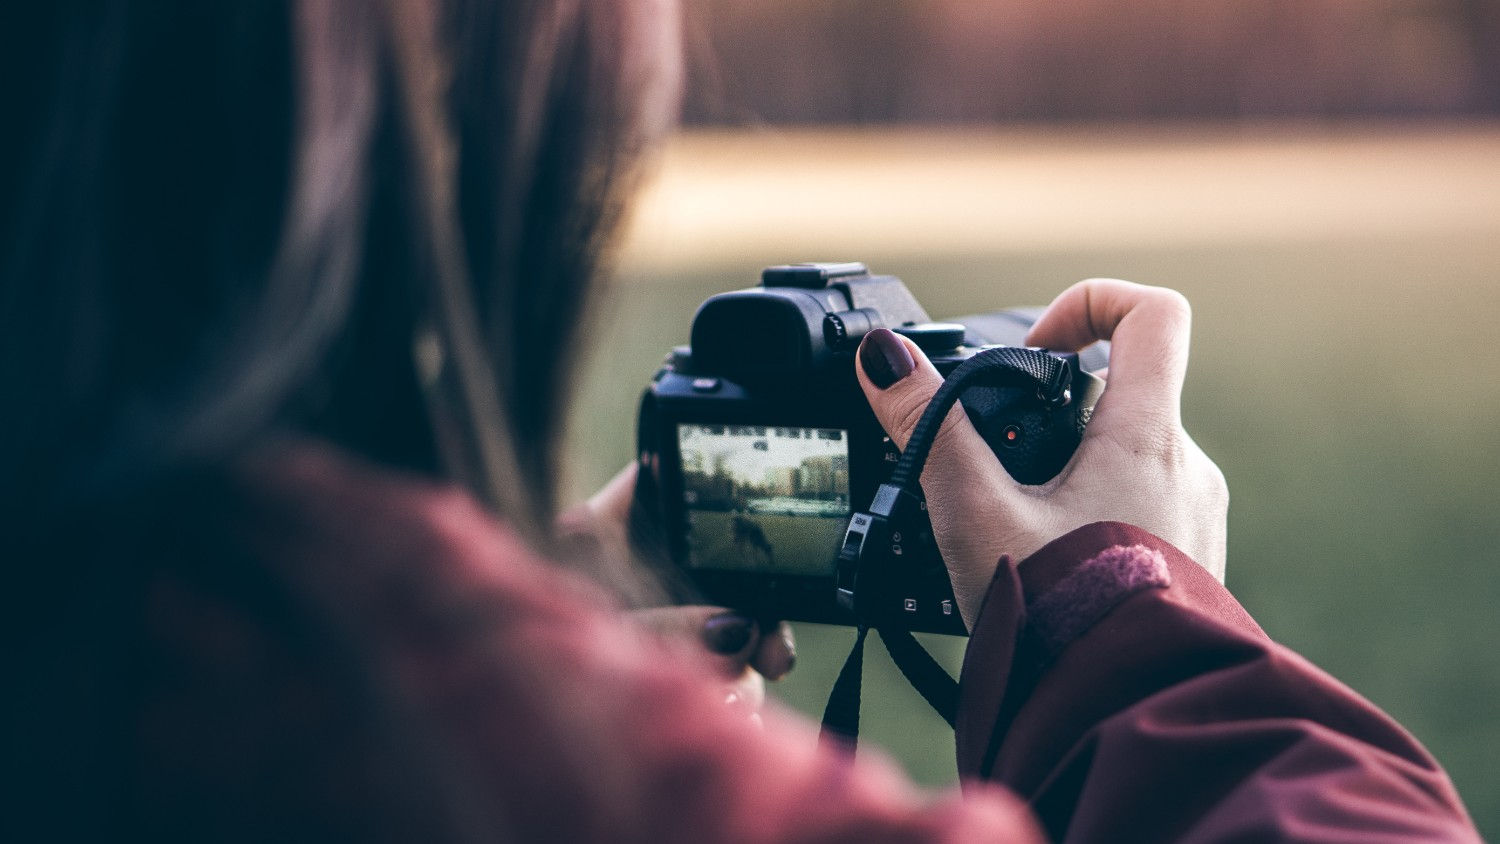 Photo Jobs - Photography is improved through experience. We offer our photographers all sorts of jobs, from paid events to volunteer experience.